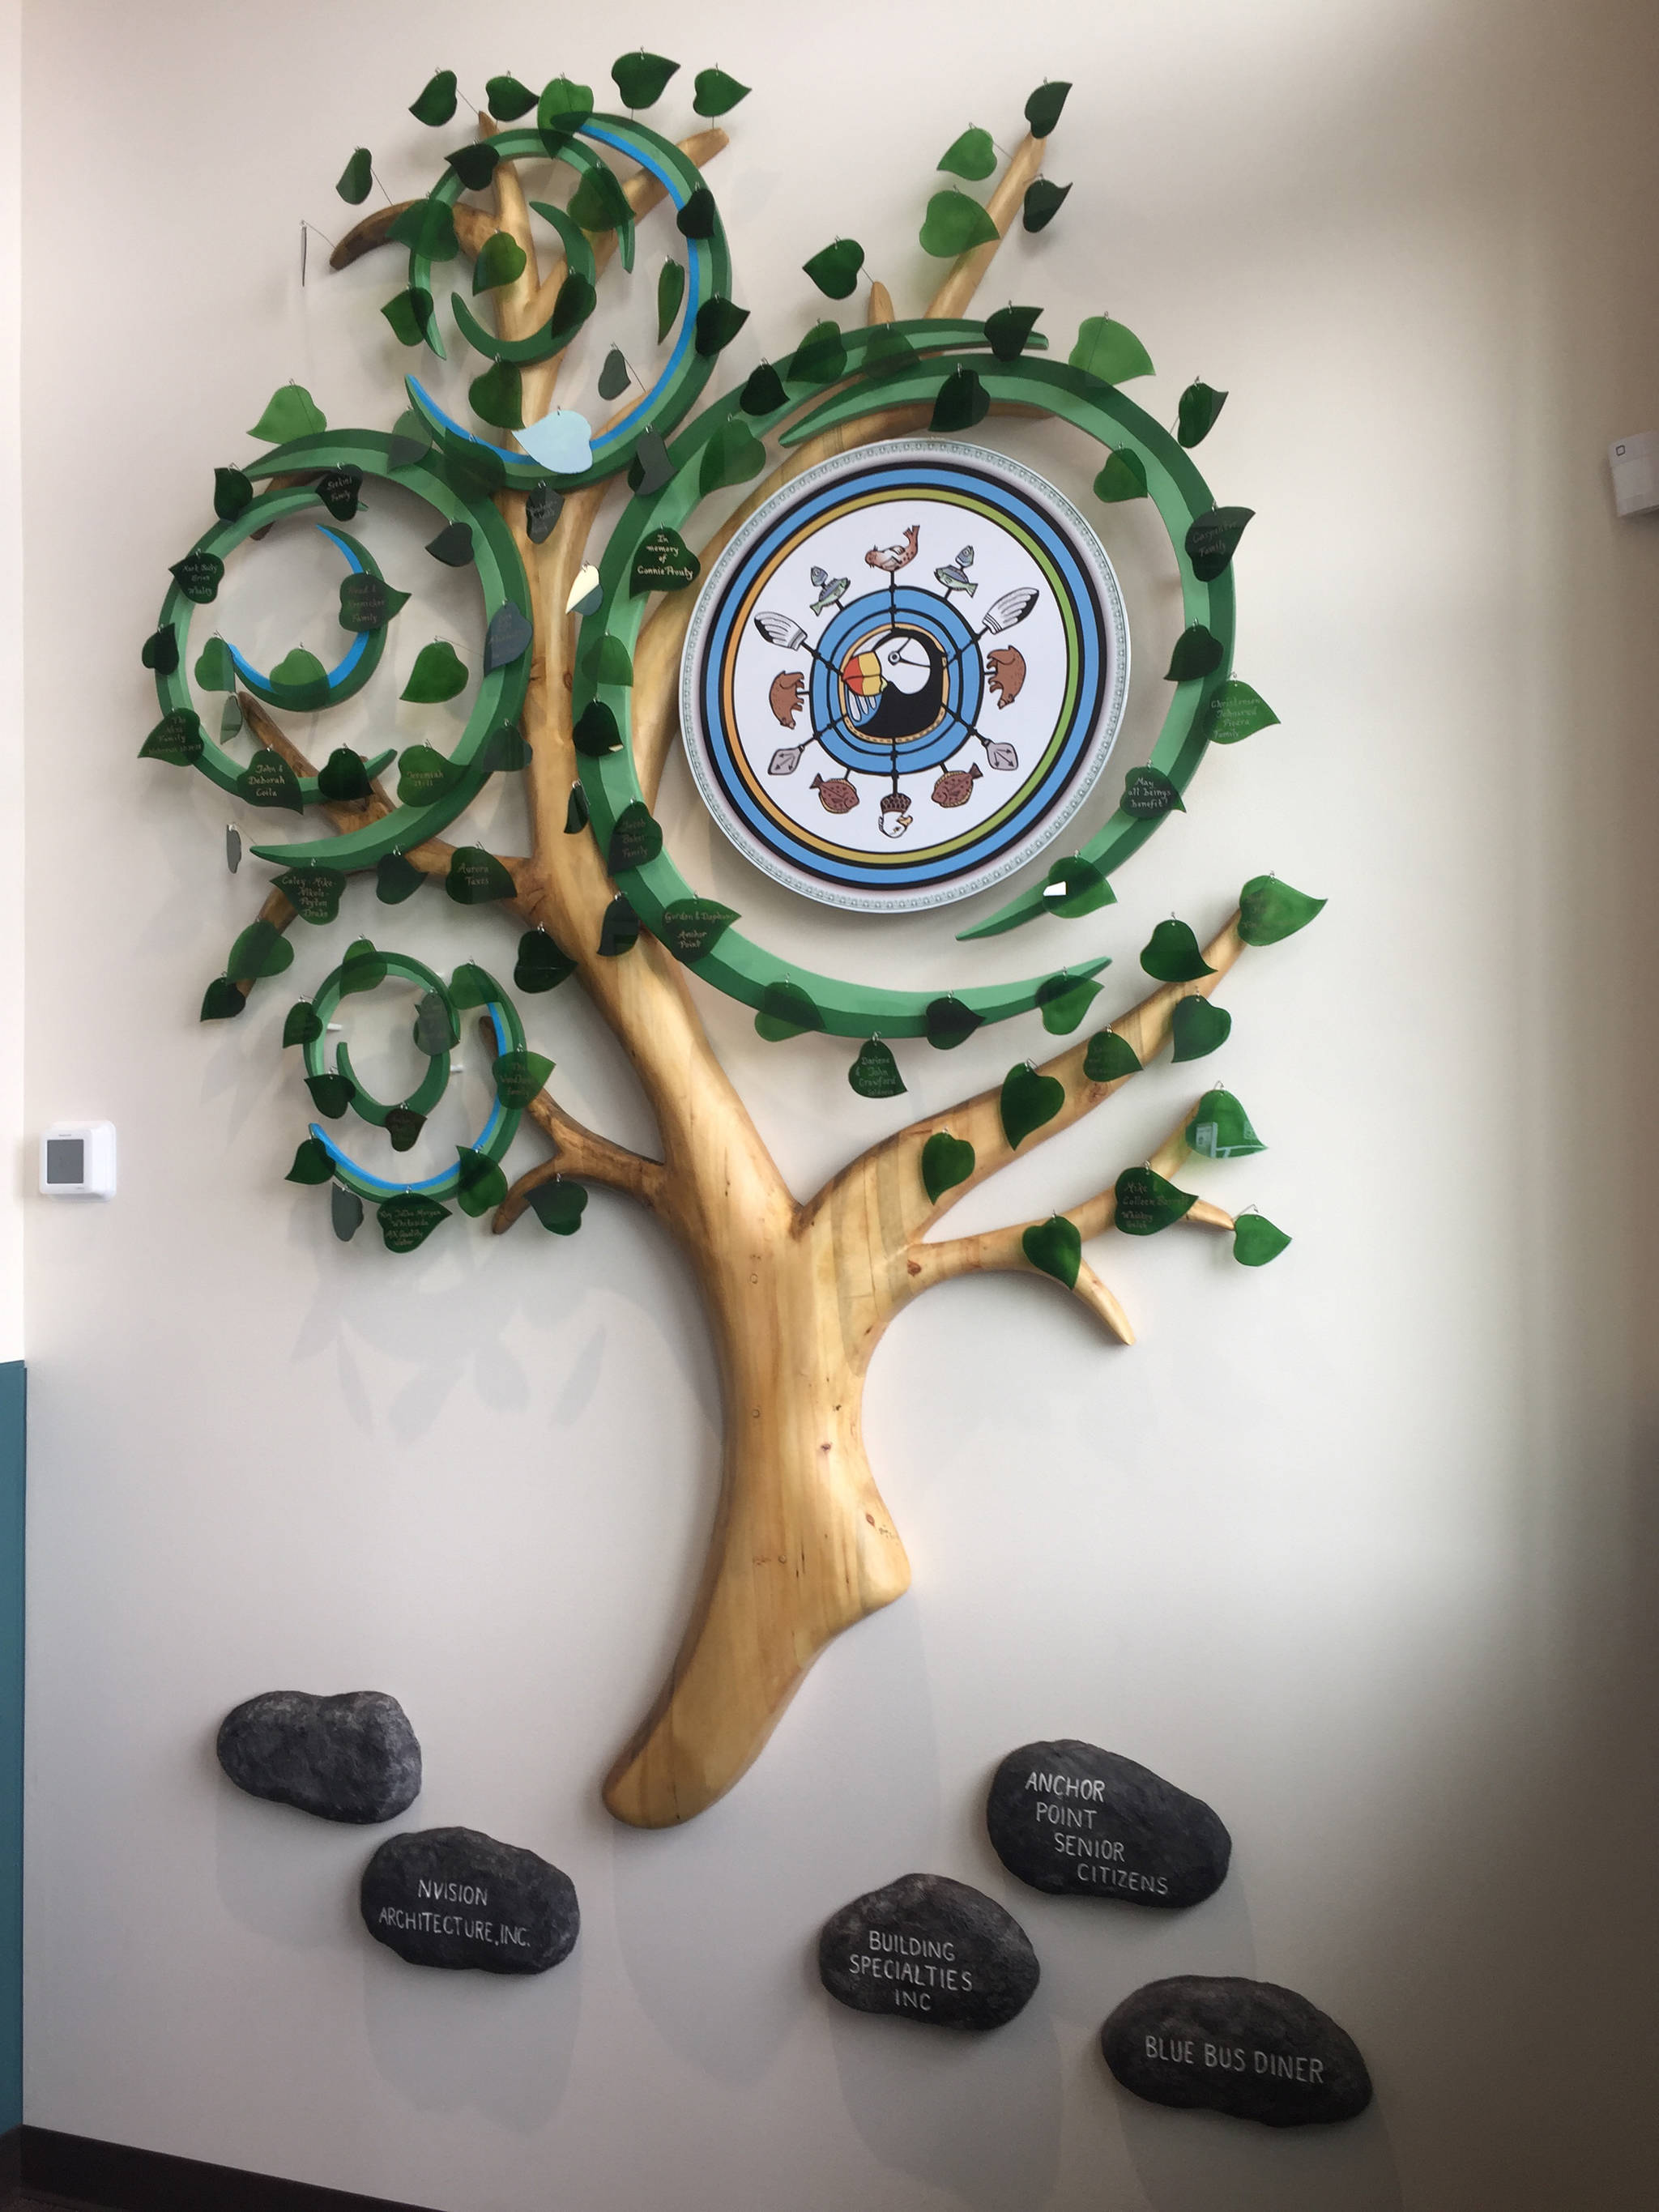 The Anchor Point Family Tree, crafted by Ben Firth of Ben Firth Studio, is the first thing visitors to the new health center see as they walk through the front door. (Photo by Delcenia Cosman)